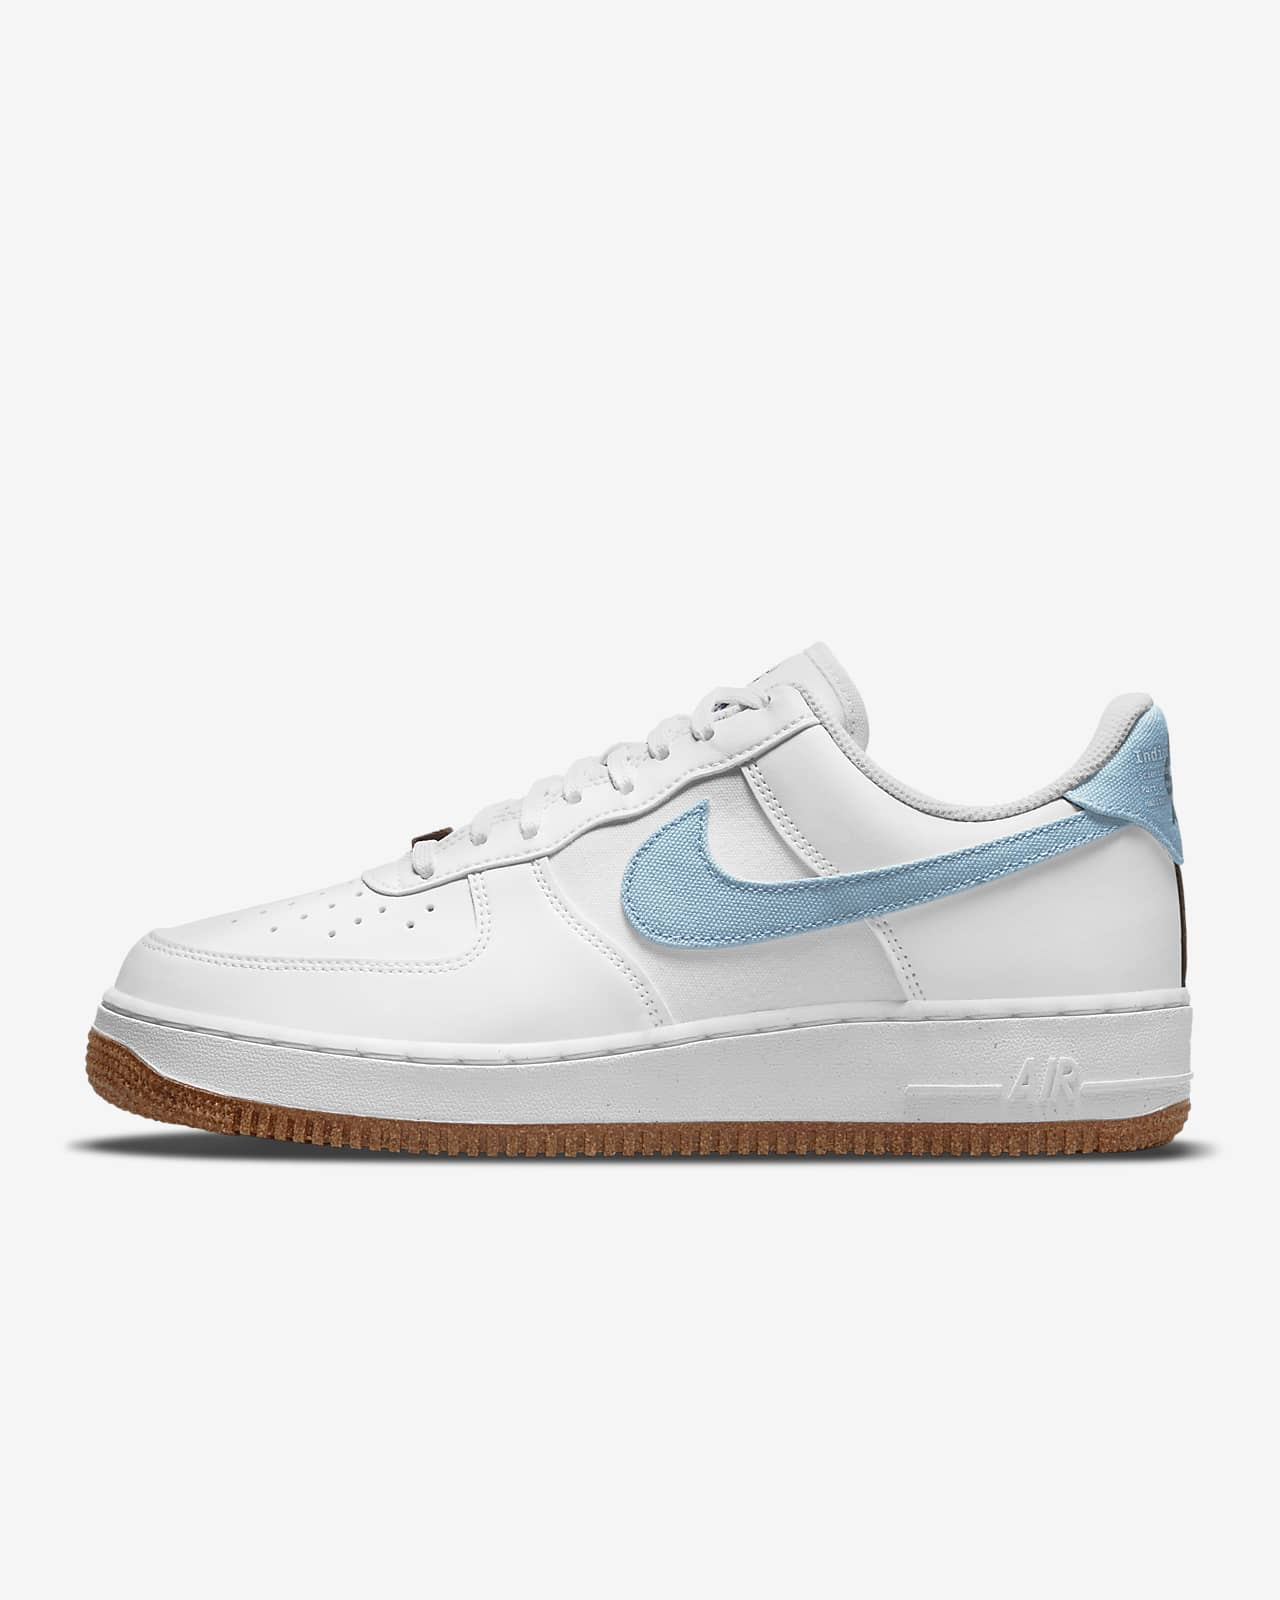 Nike Air Force 1 '07 LV8 Shoes